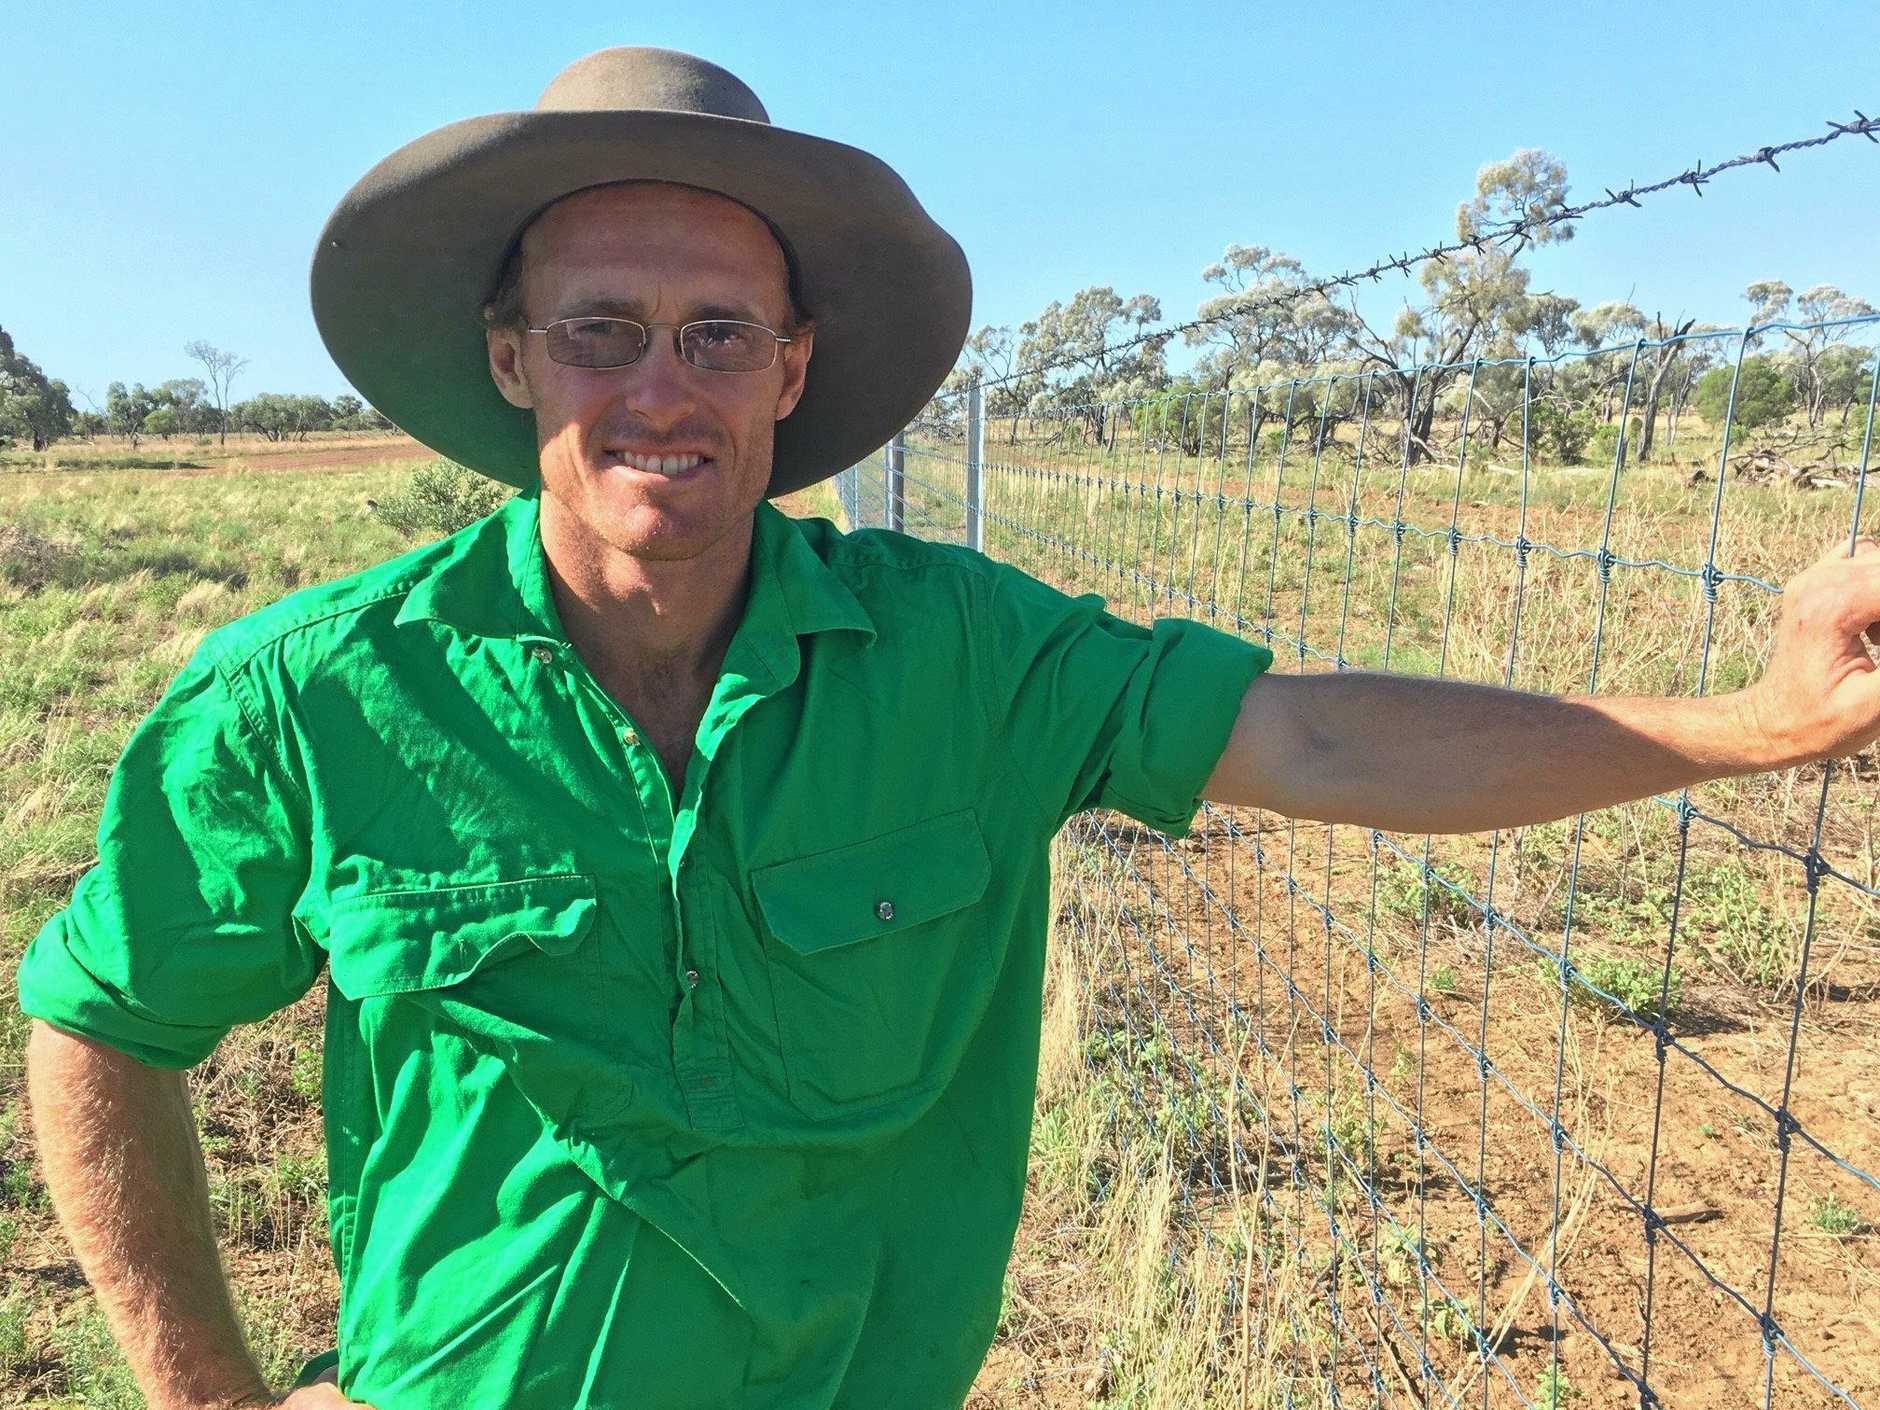 Longreach wool producer David Owens, is another western Queensland producer who was motivated to install exclusion fencing to reduce the impact of wild dogs on his Merino operation.